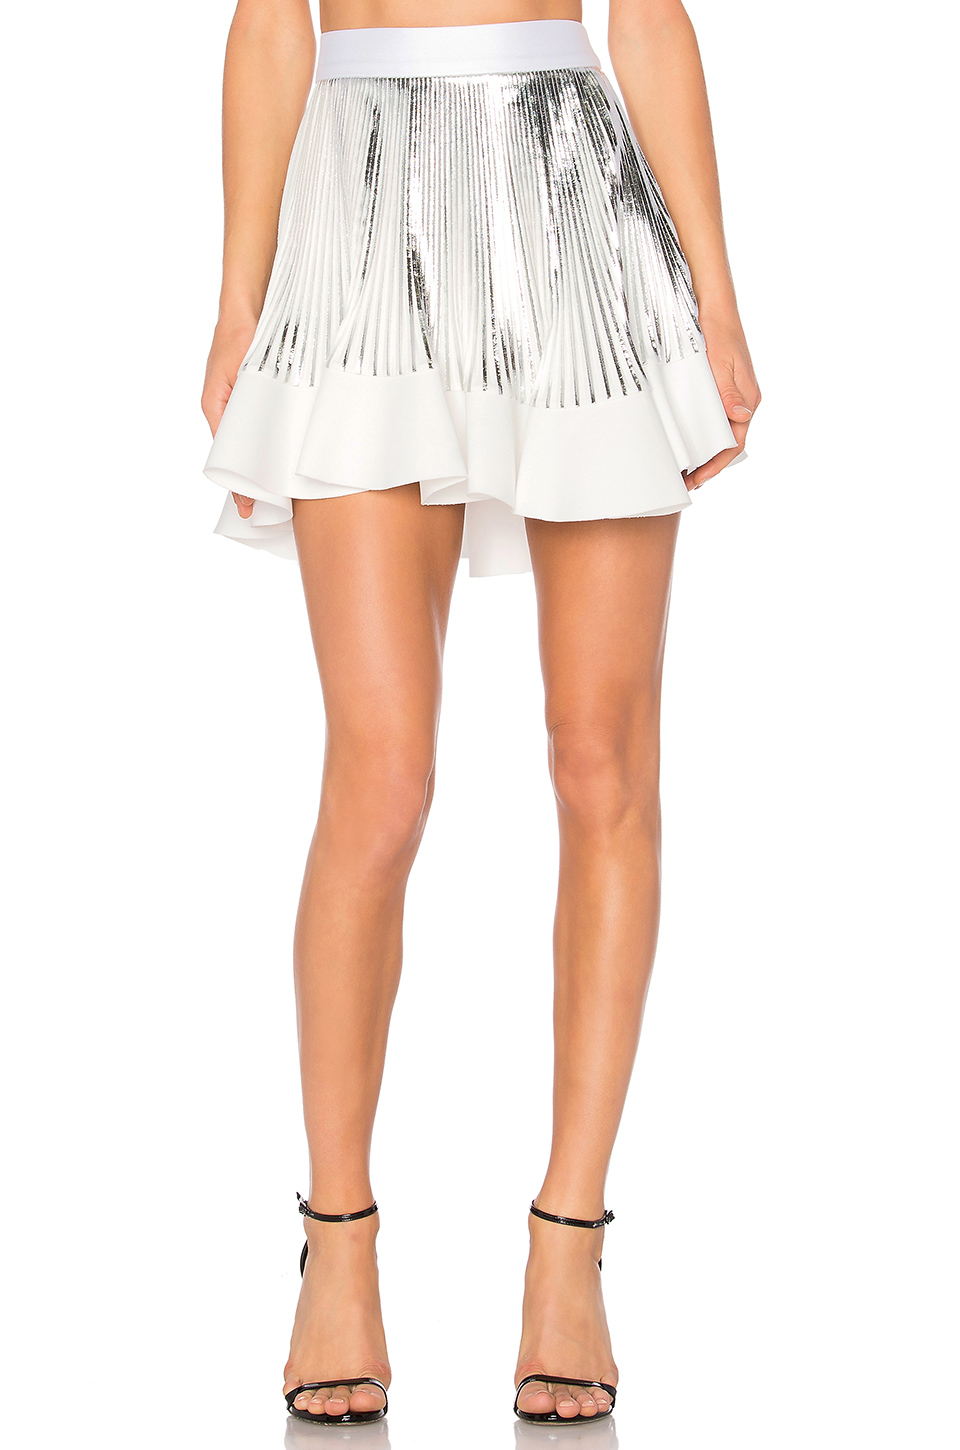 BY JOHNNY PLEAT FLUTE MINI SKIRT